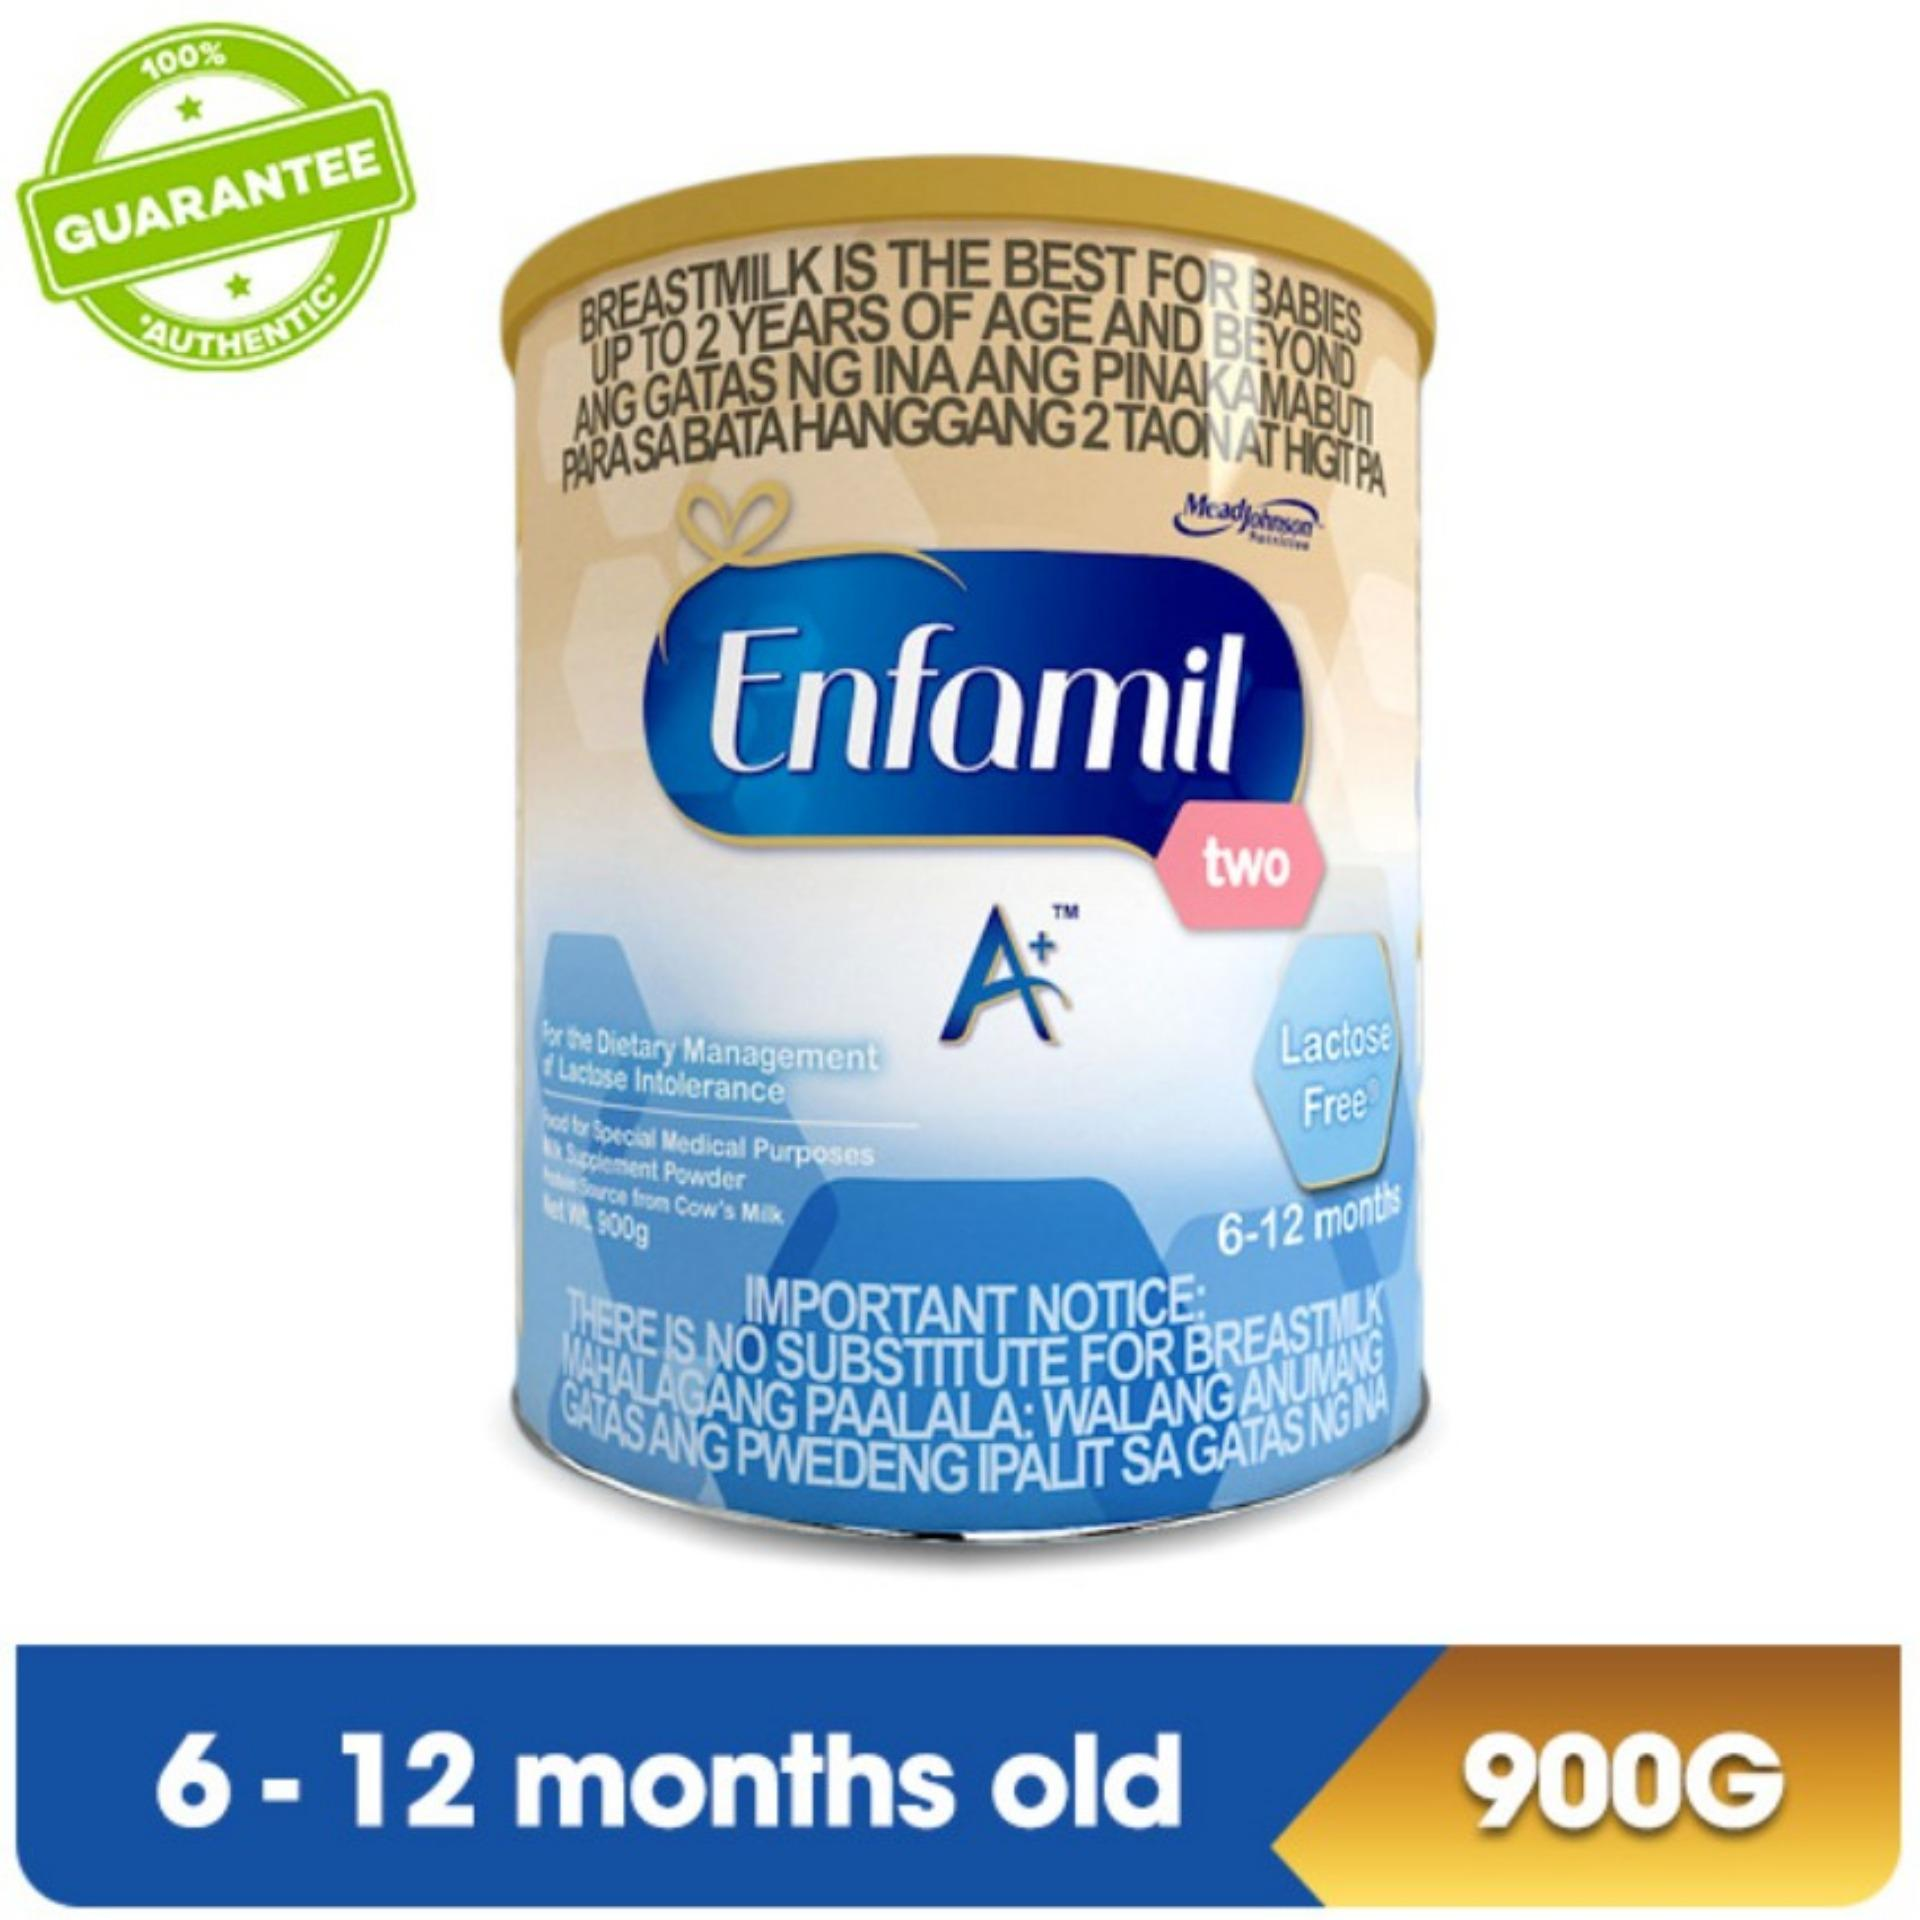 Enfamil Philippines Price List Infant Milk Formula For Nan Ph Pro 3 800g A Two Supplement Powder Lactose Free 6 12 Months 900g